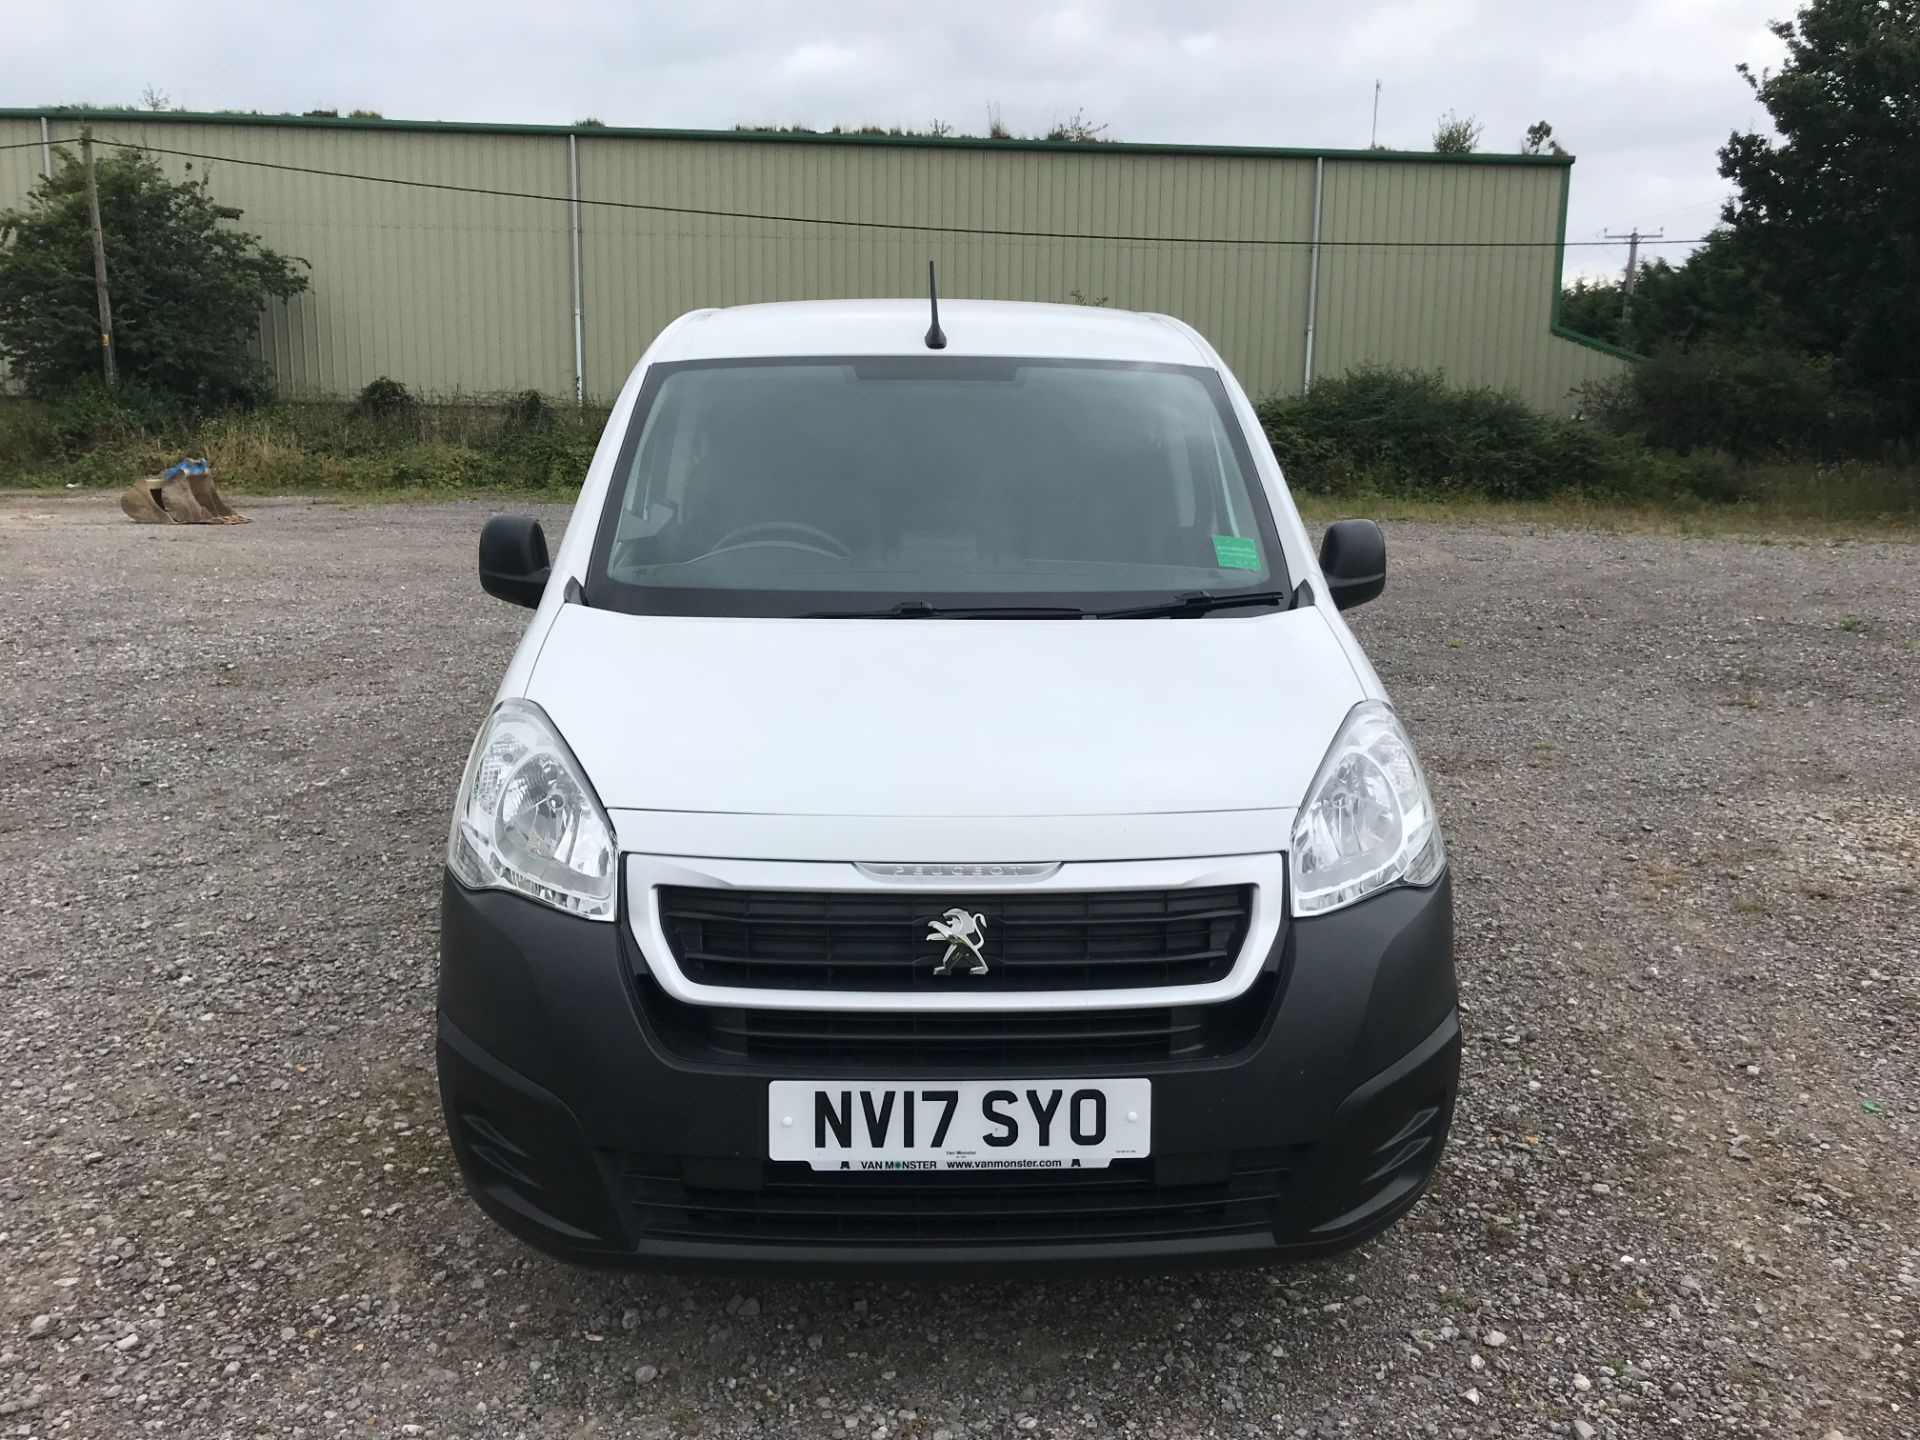 2017 Peugeot Partner L1 850 1.6 BLUEHDI 100 PROFESSIONAL (NON S/S)EURO 6 *Limited to 70MPH* (NV17SYO) Image 2